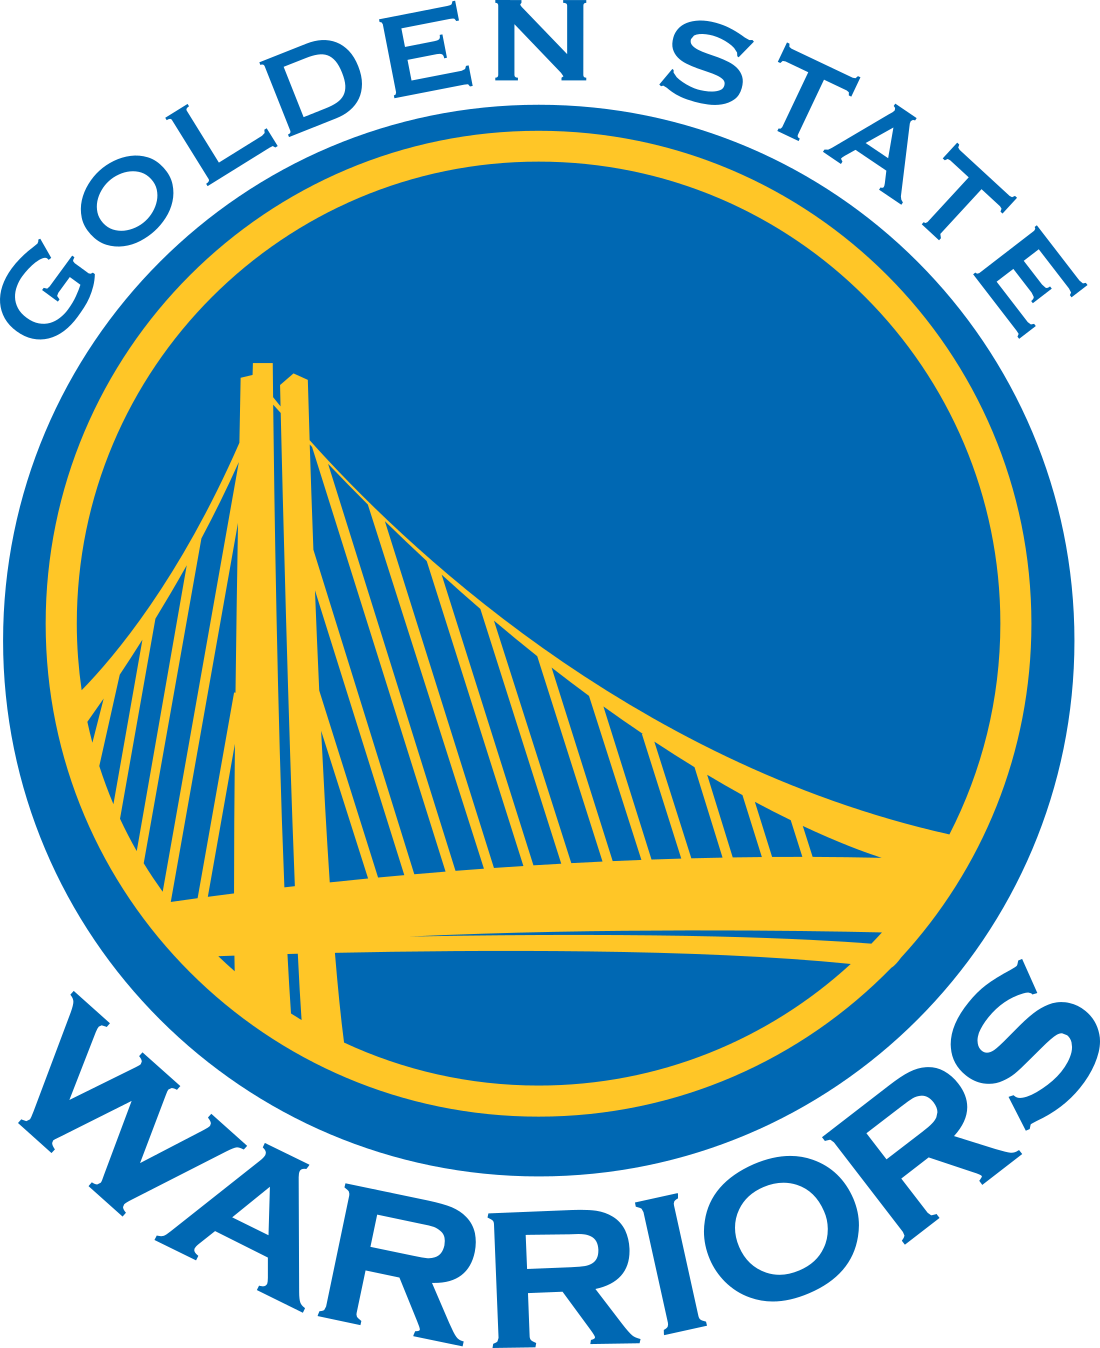 golden state warriors logo 3 - Golden State Warriors Logo